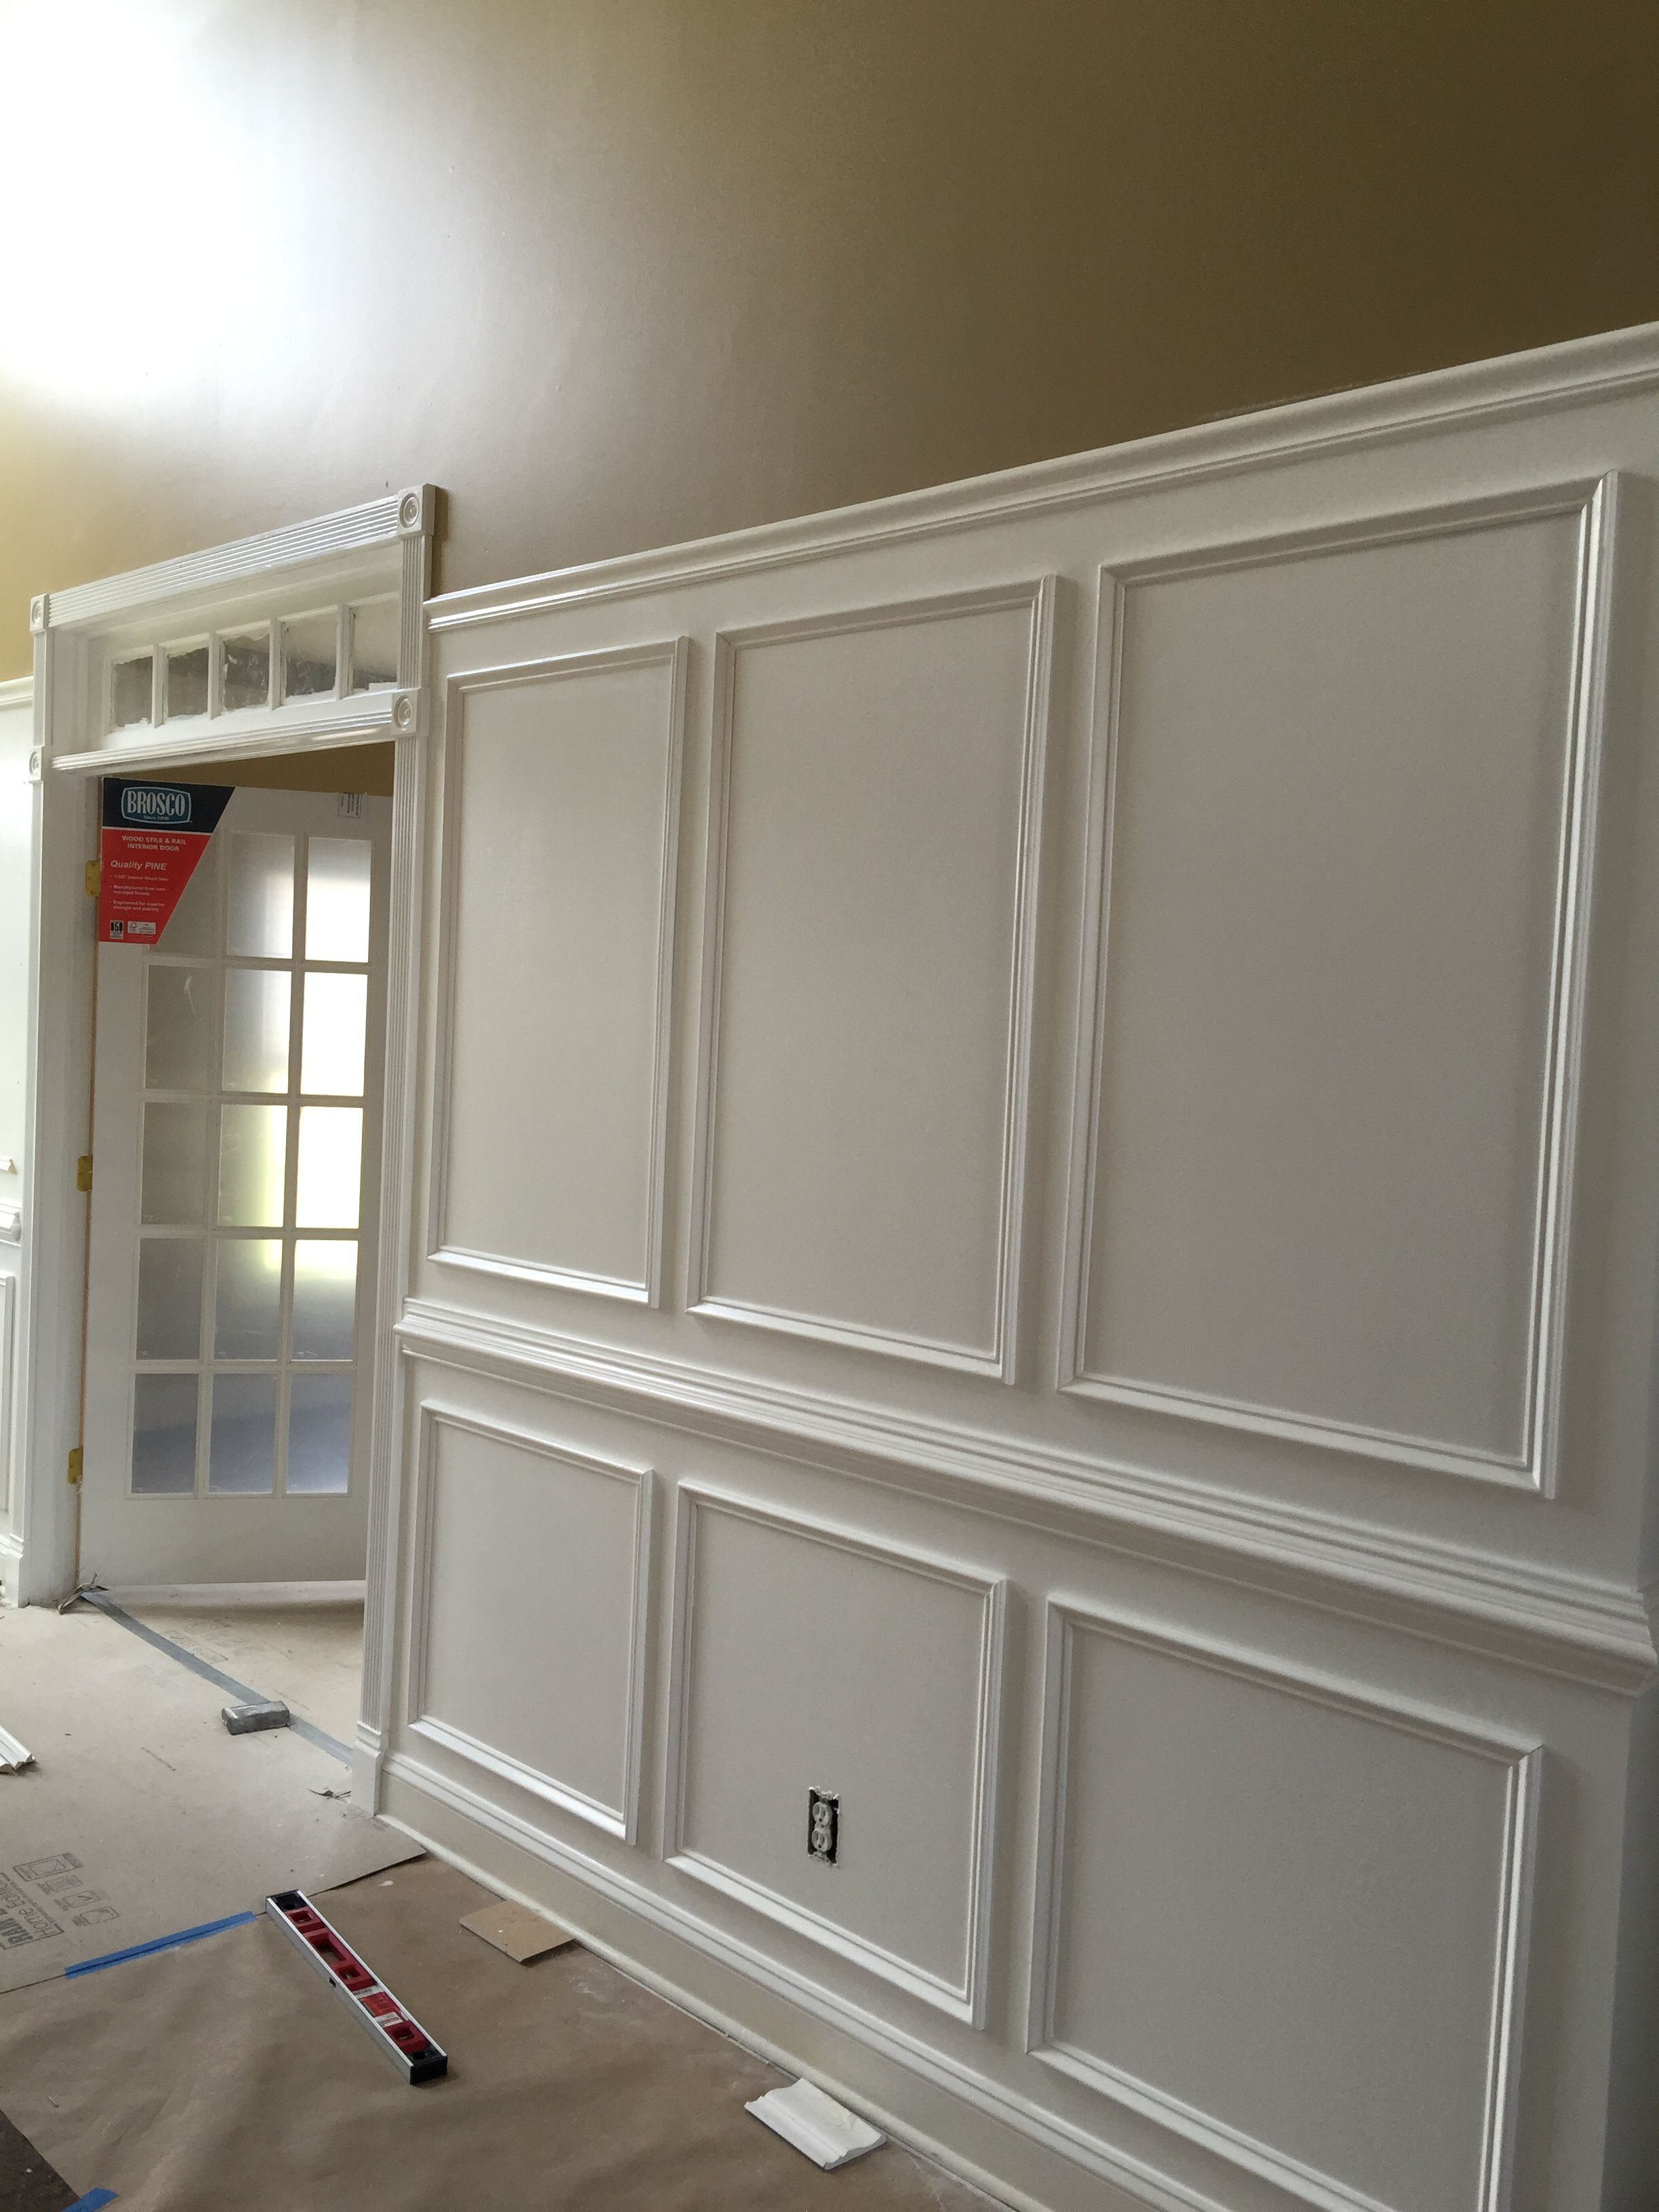 Super Genius Tricks Wainscoting Around Windows Craftsman Style Shiplap Wainscoting Board And Batten Ship Wainscoting Height Diy Wainscoting Wainscoting Styles